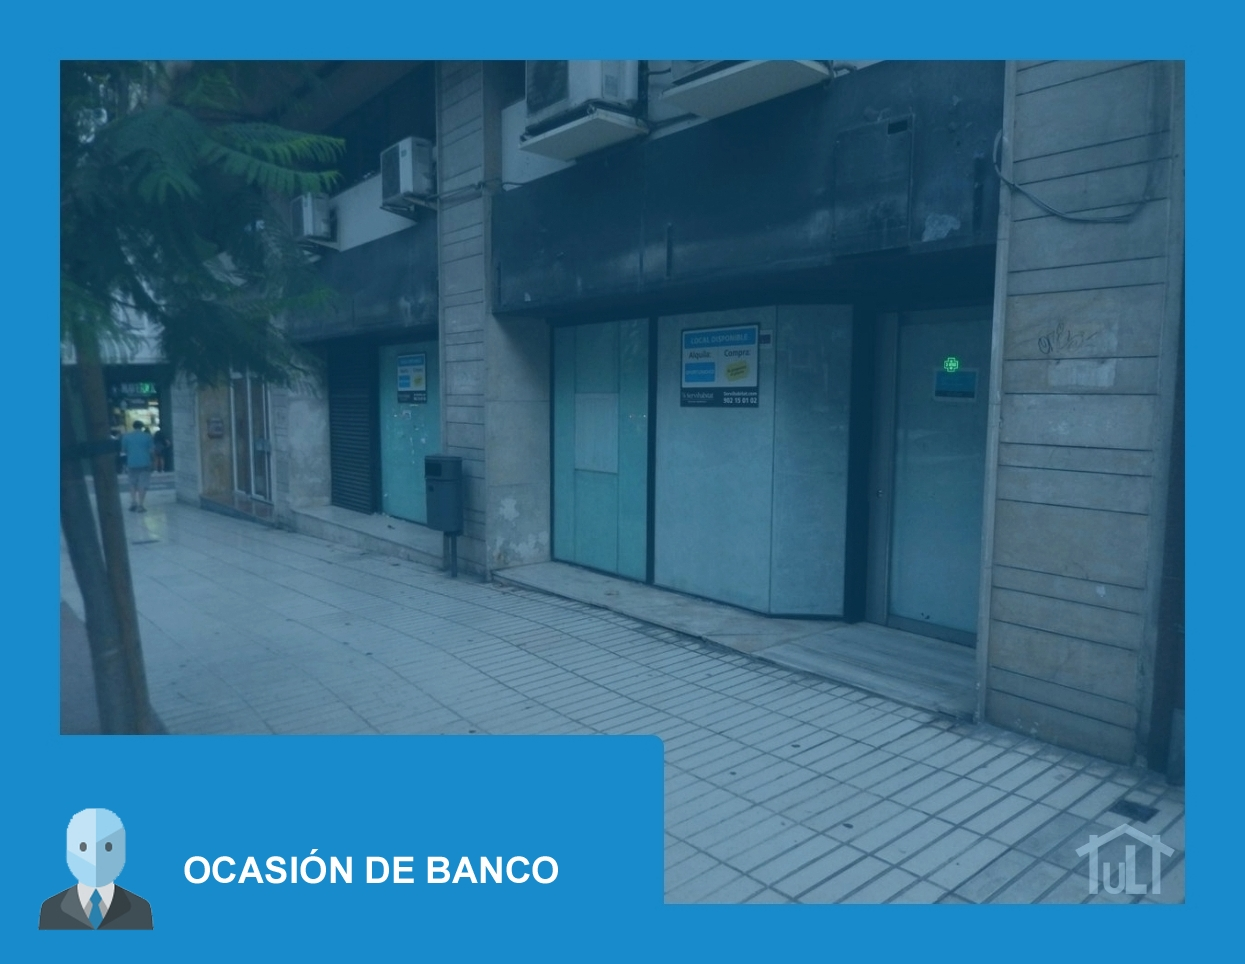 Local Comercial – Ocasión de Banco